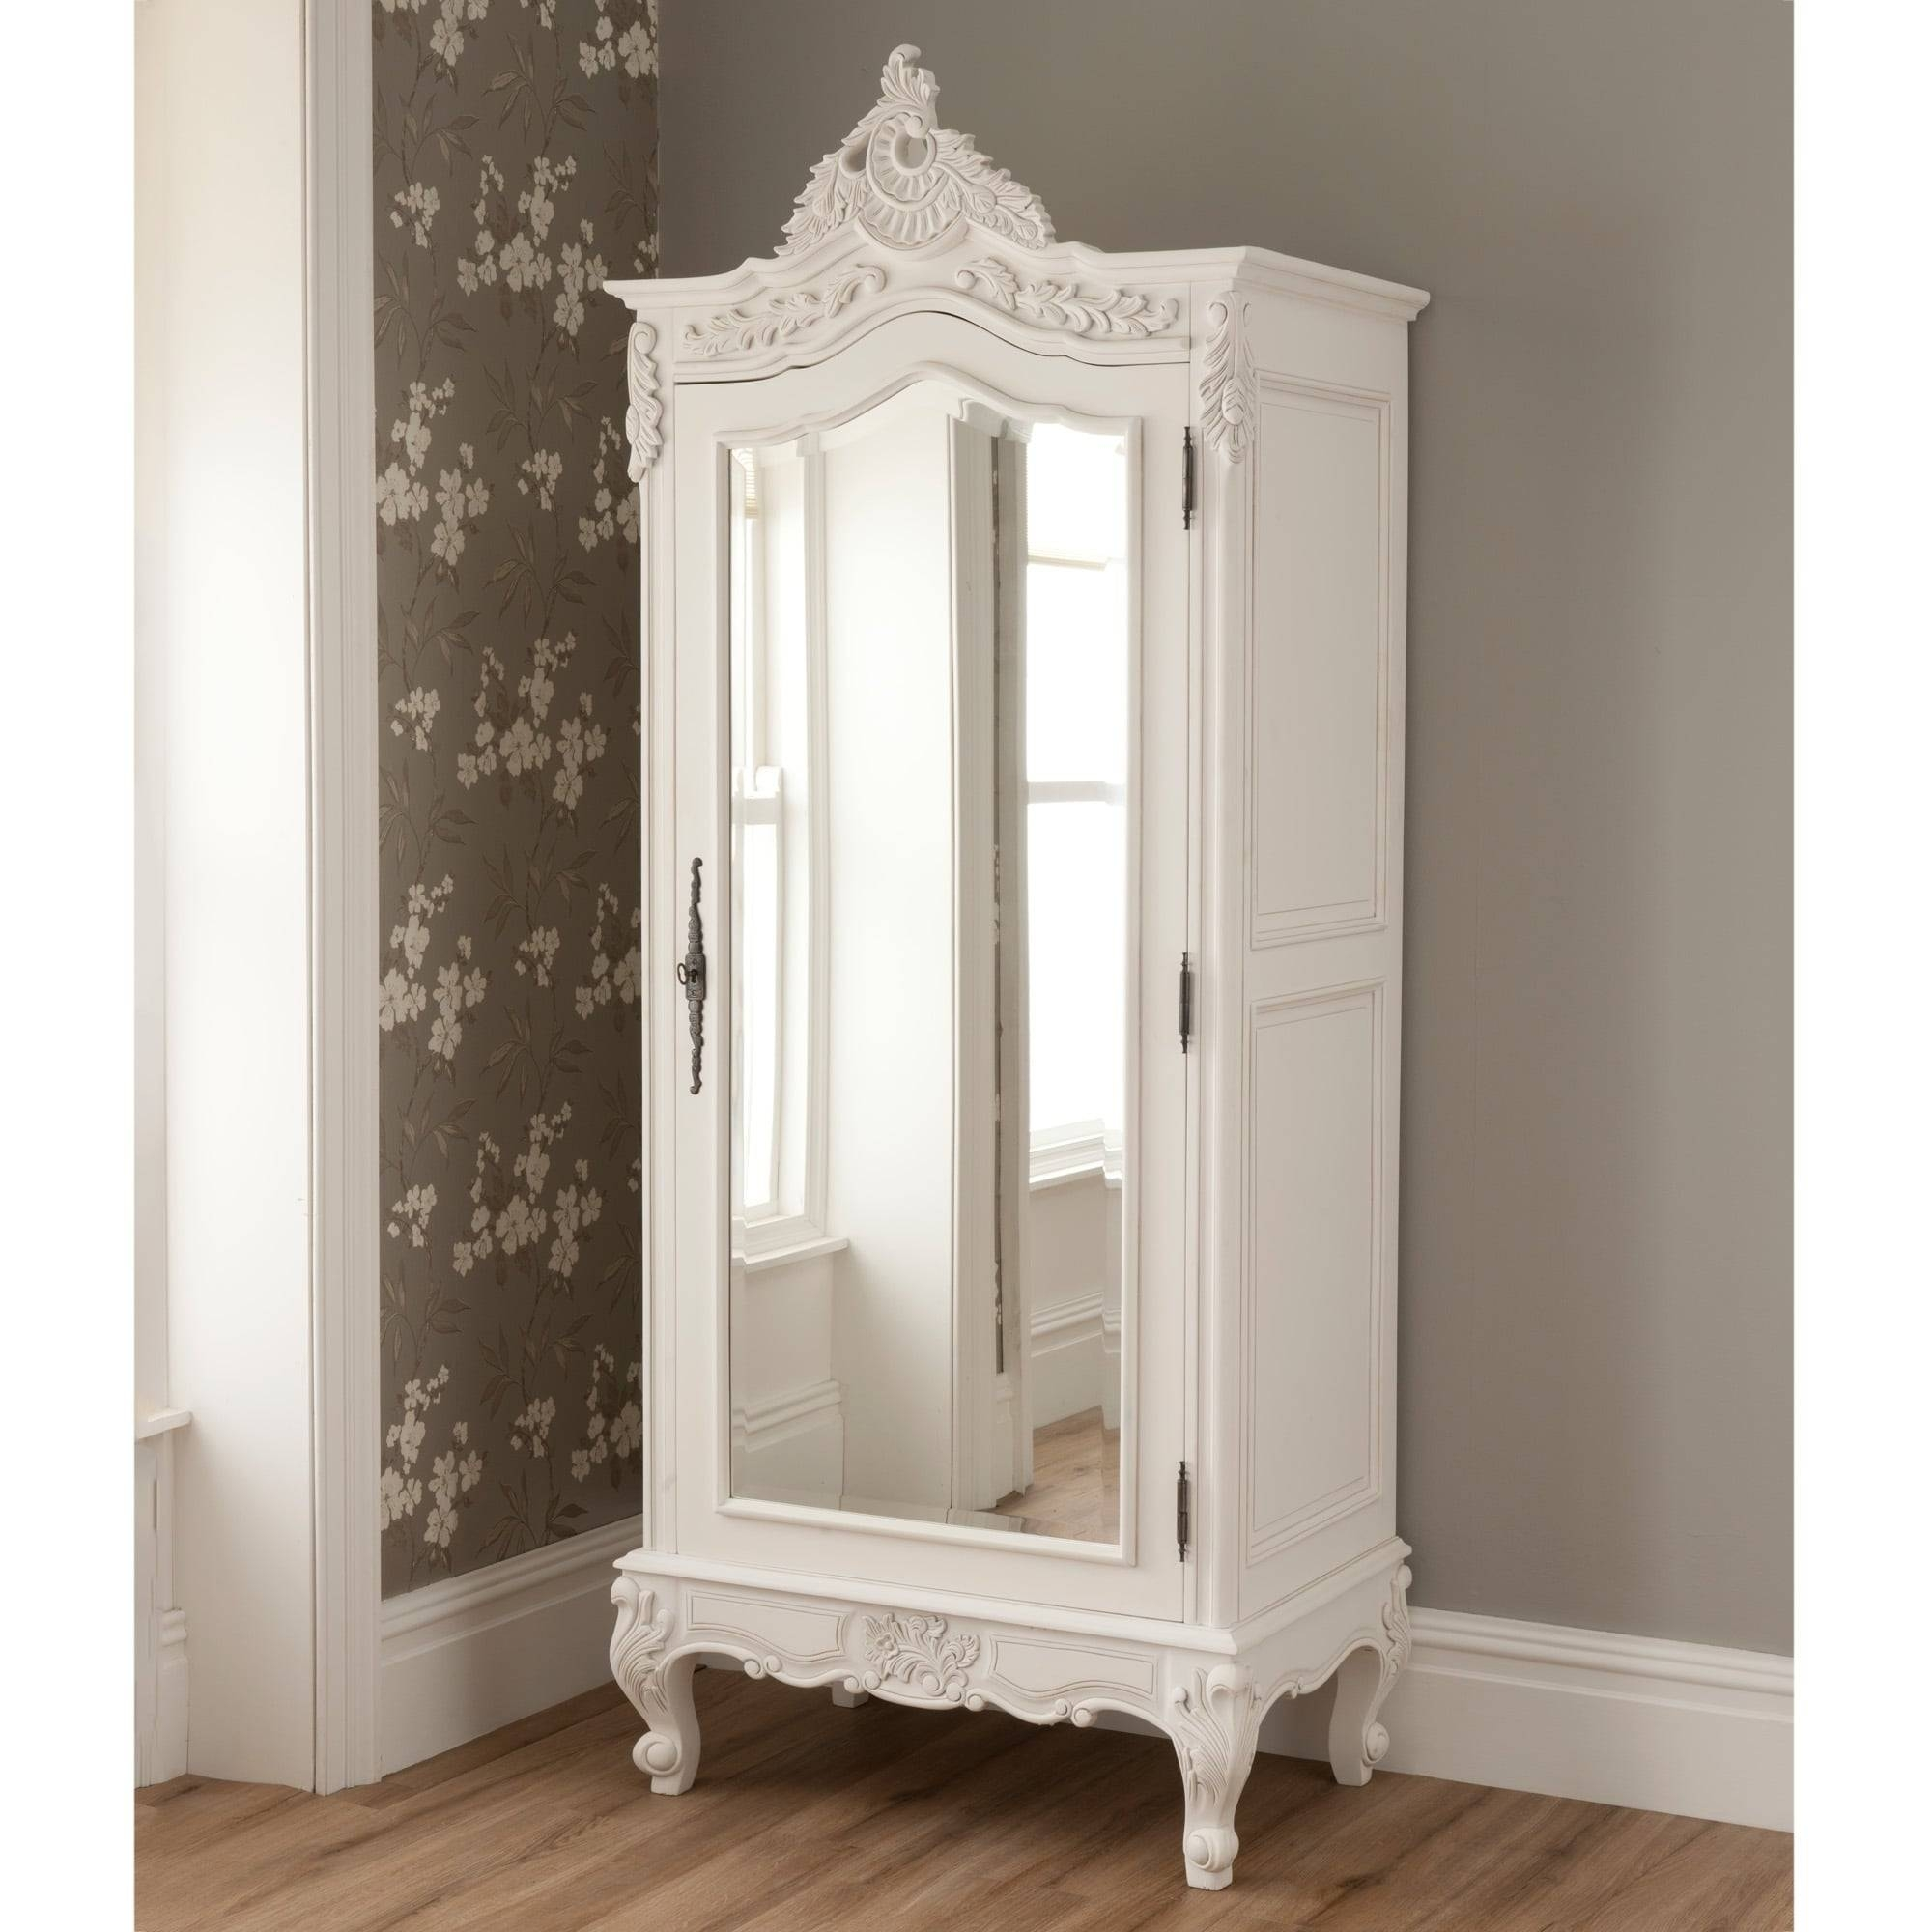 La Rochelle Mirrored Antique French 1 Door Wardrobe within 1 Door Mirrored Wardrobes (Image 4 of 15)